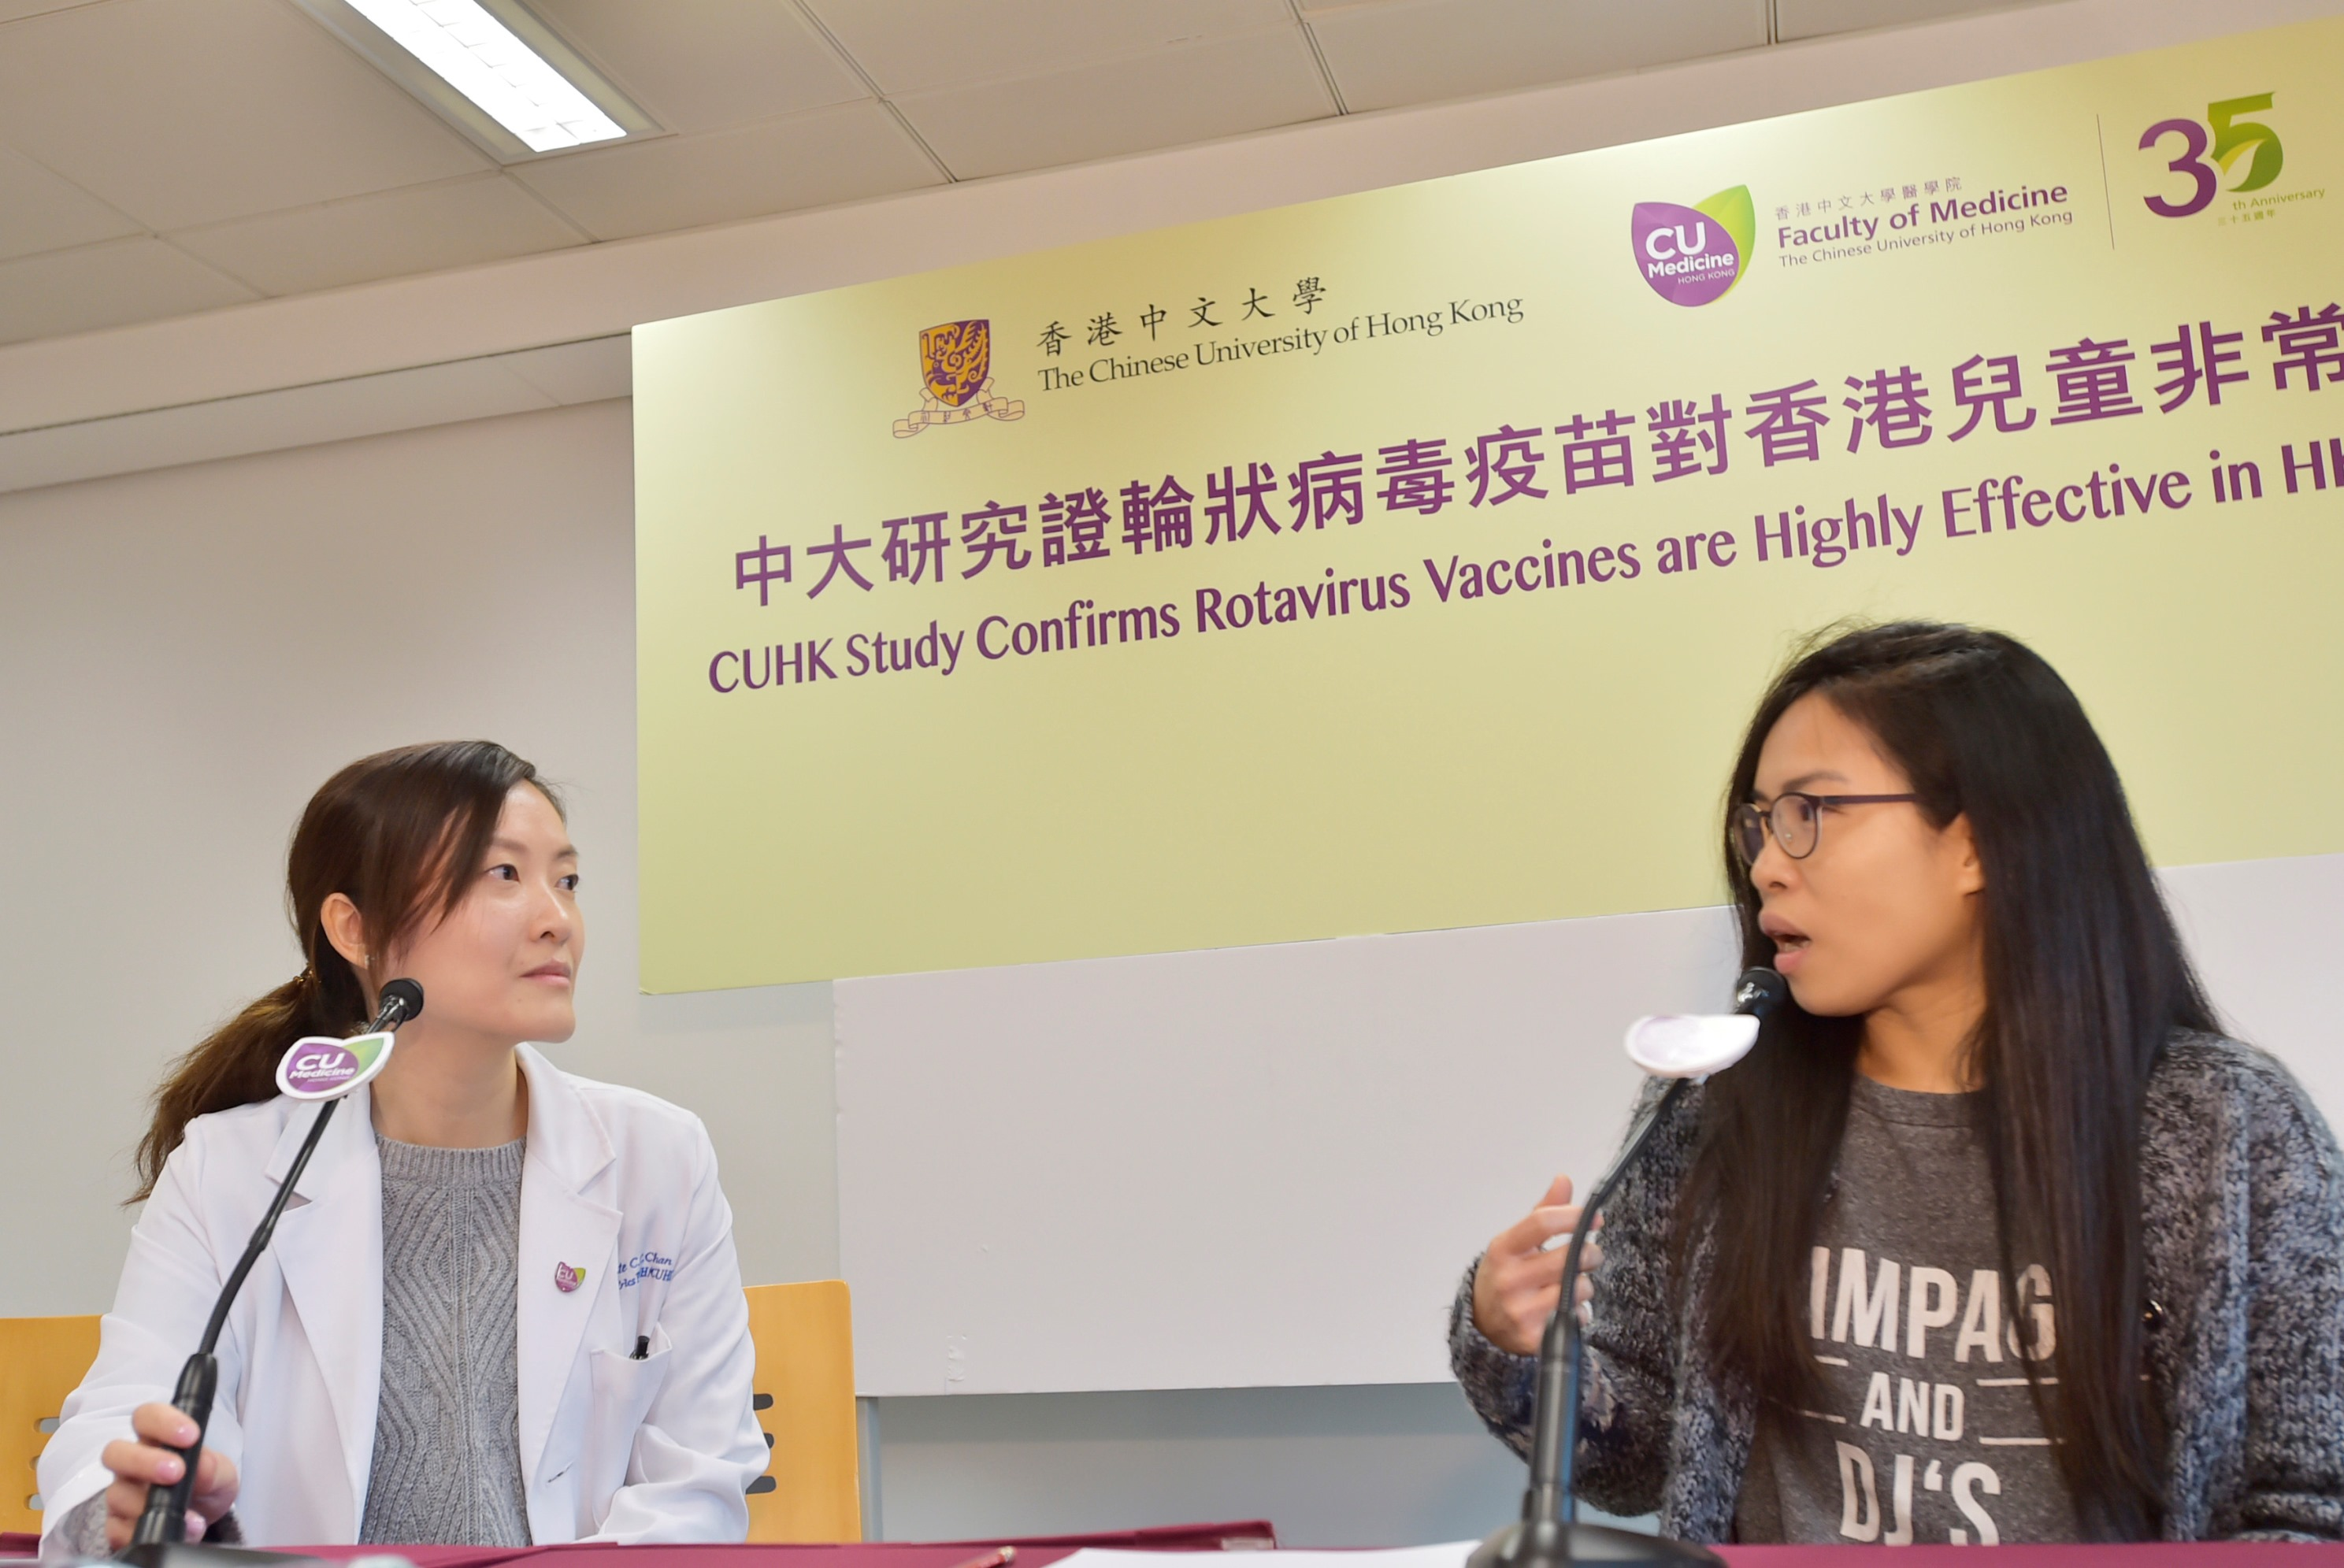 Mrs Ho (right) says her daughter was admitted to hospital for four days because of rotavirus when she was 2.5 years old. She was not aware that vaccination is available in Hong Kong for prevention.